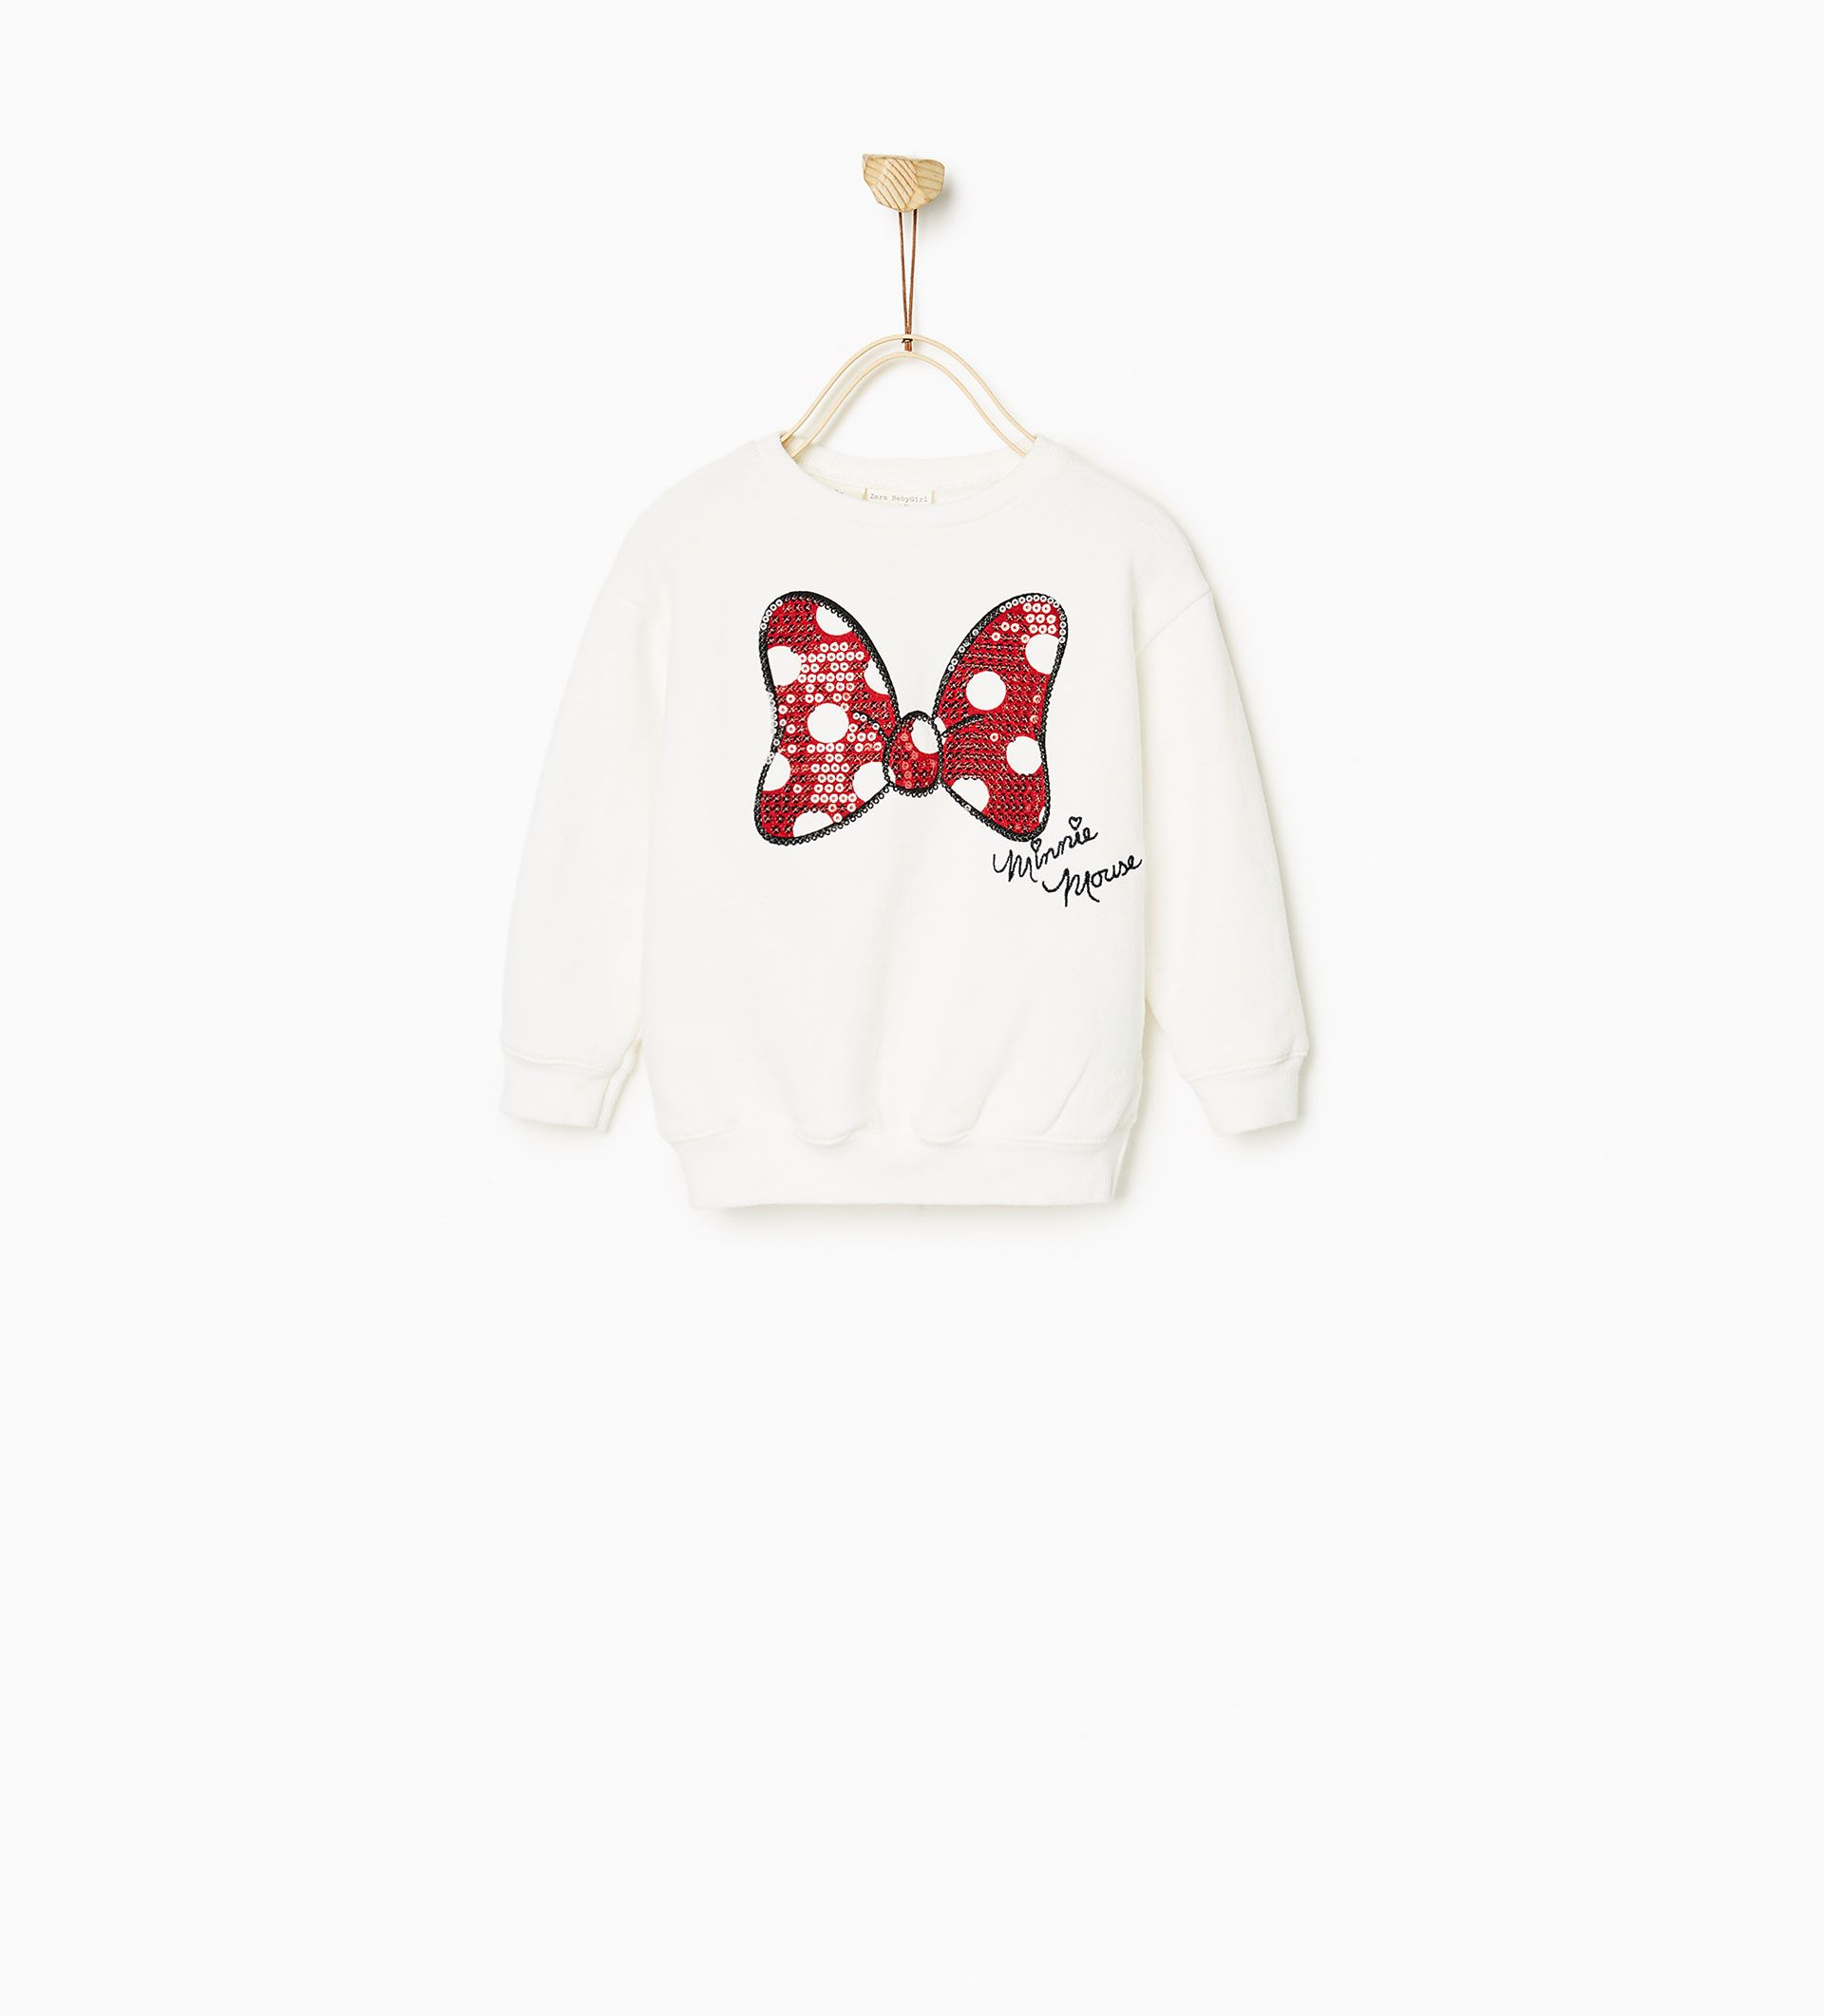 ZARA ENFANTS SWEAT MINNIE INDIGO | Babys | Ropa bebe